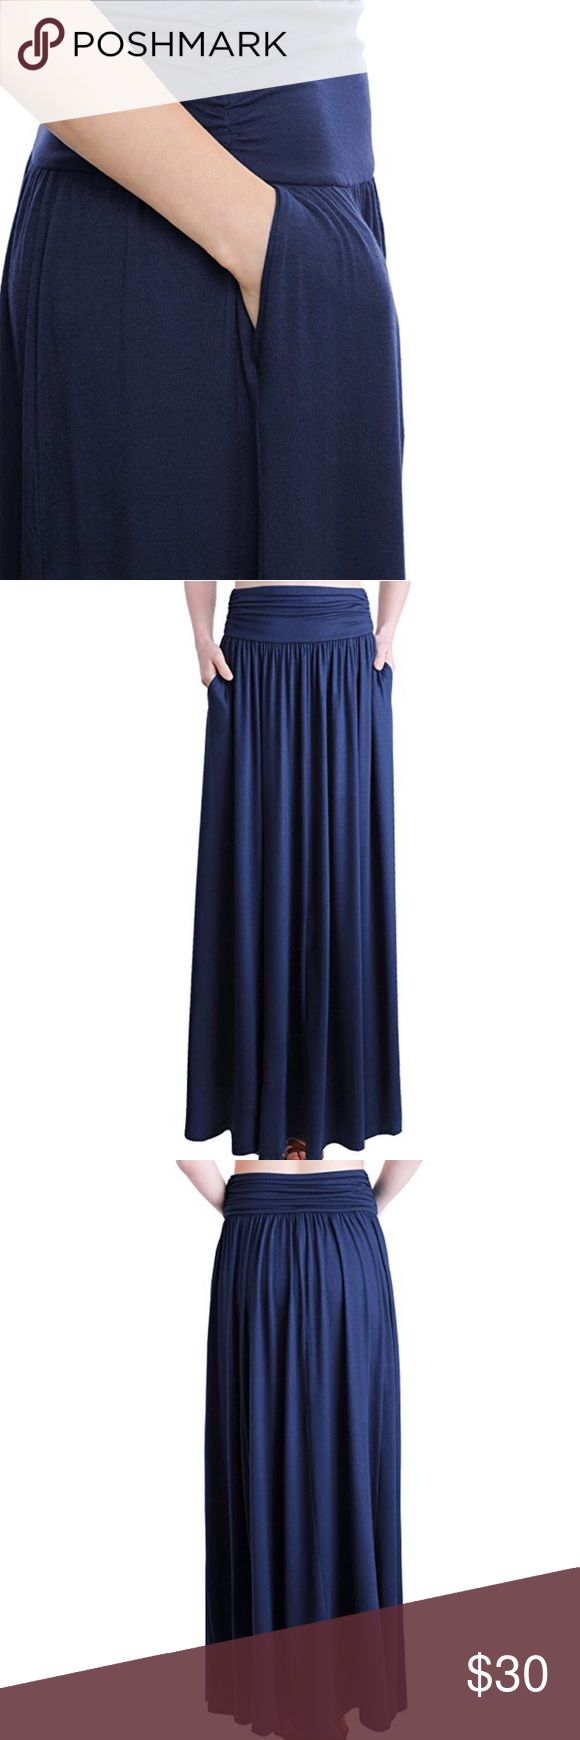 ✖️Navy Maxi ✖️ A great flowy maxi, in navy blue. Looks so cute with a fitted top. Sooo lovelyyy 💋(NWOT) Skirts Maxi